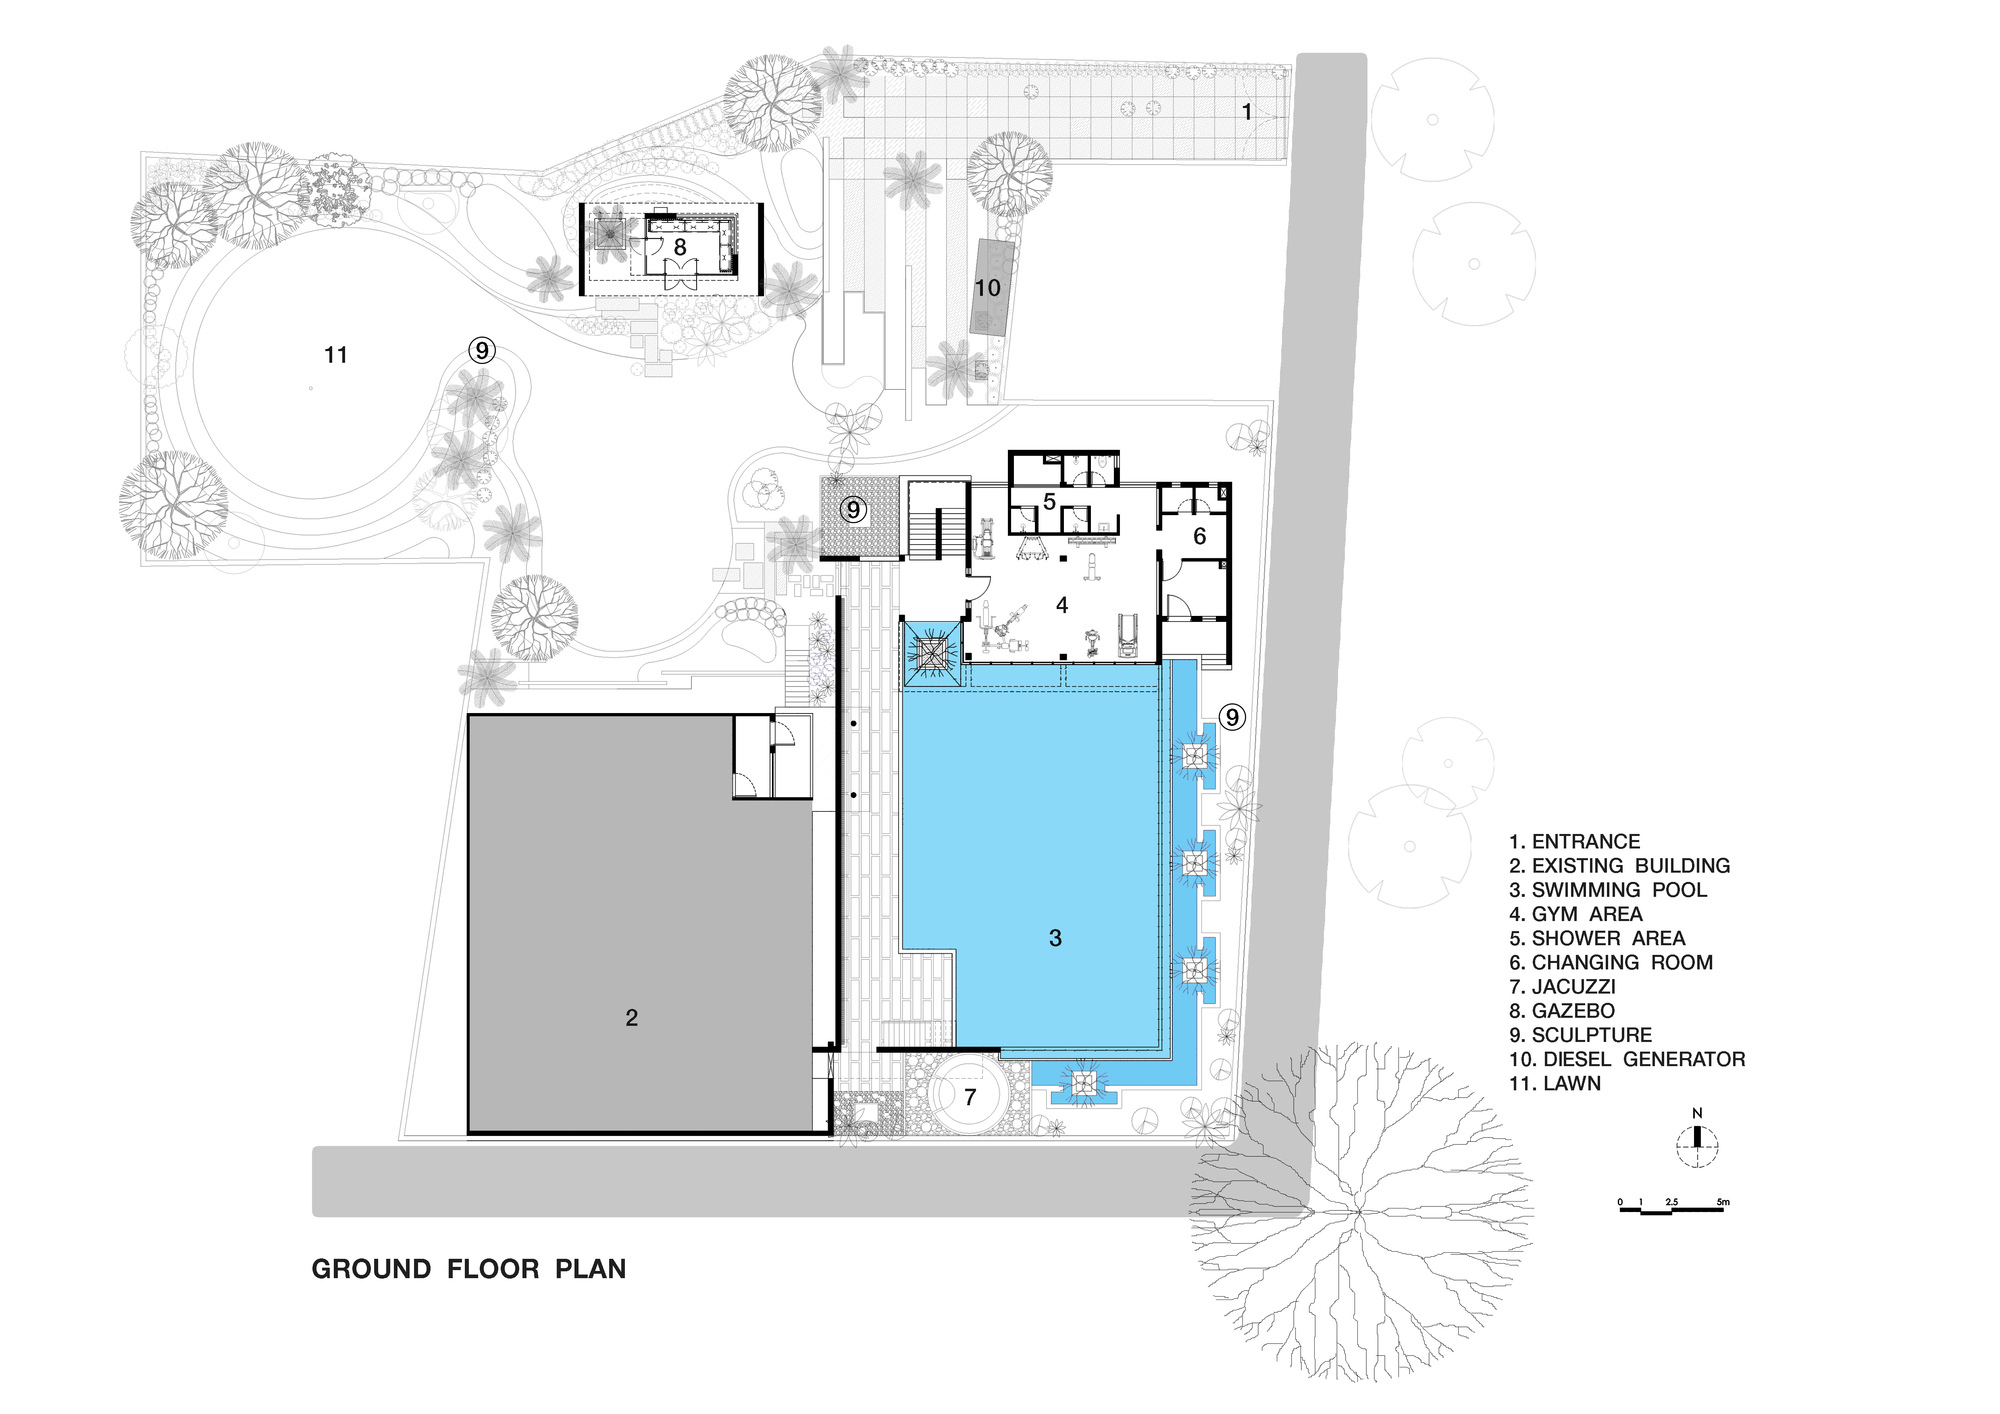 Pool House Plans Gallery Of Pool House Abin Design Studio 21